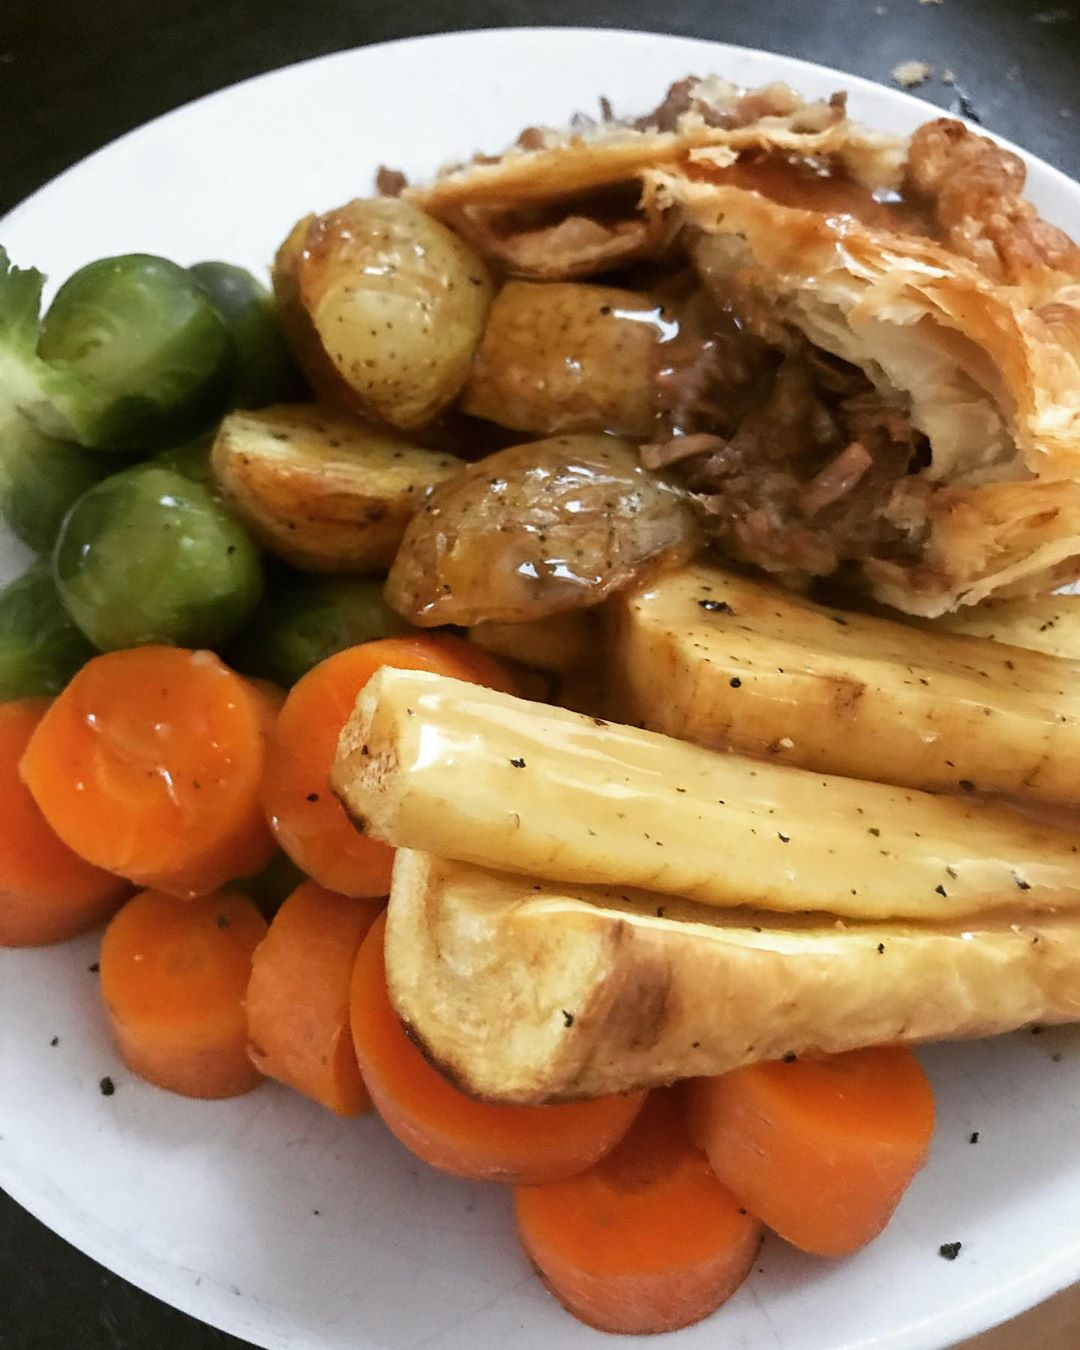 Back home from holiday and craving some pie! Pulled jackfruit, onion and gravy pie with some lovely...